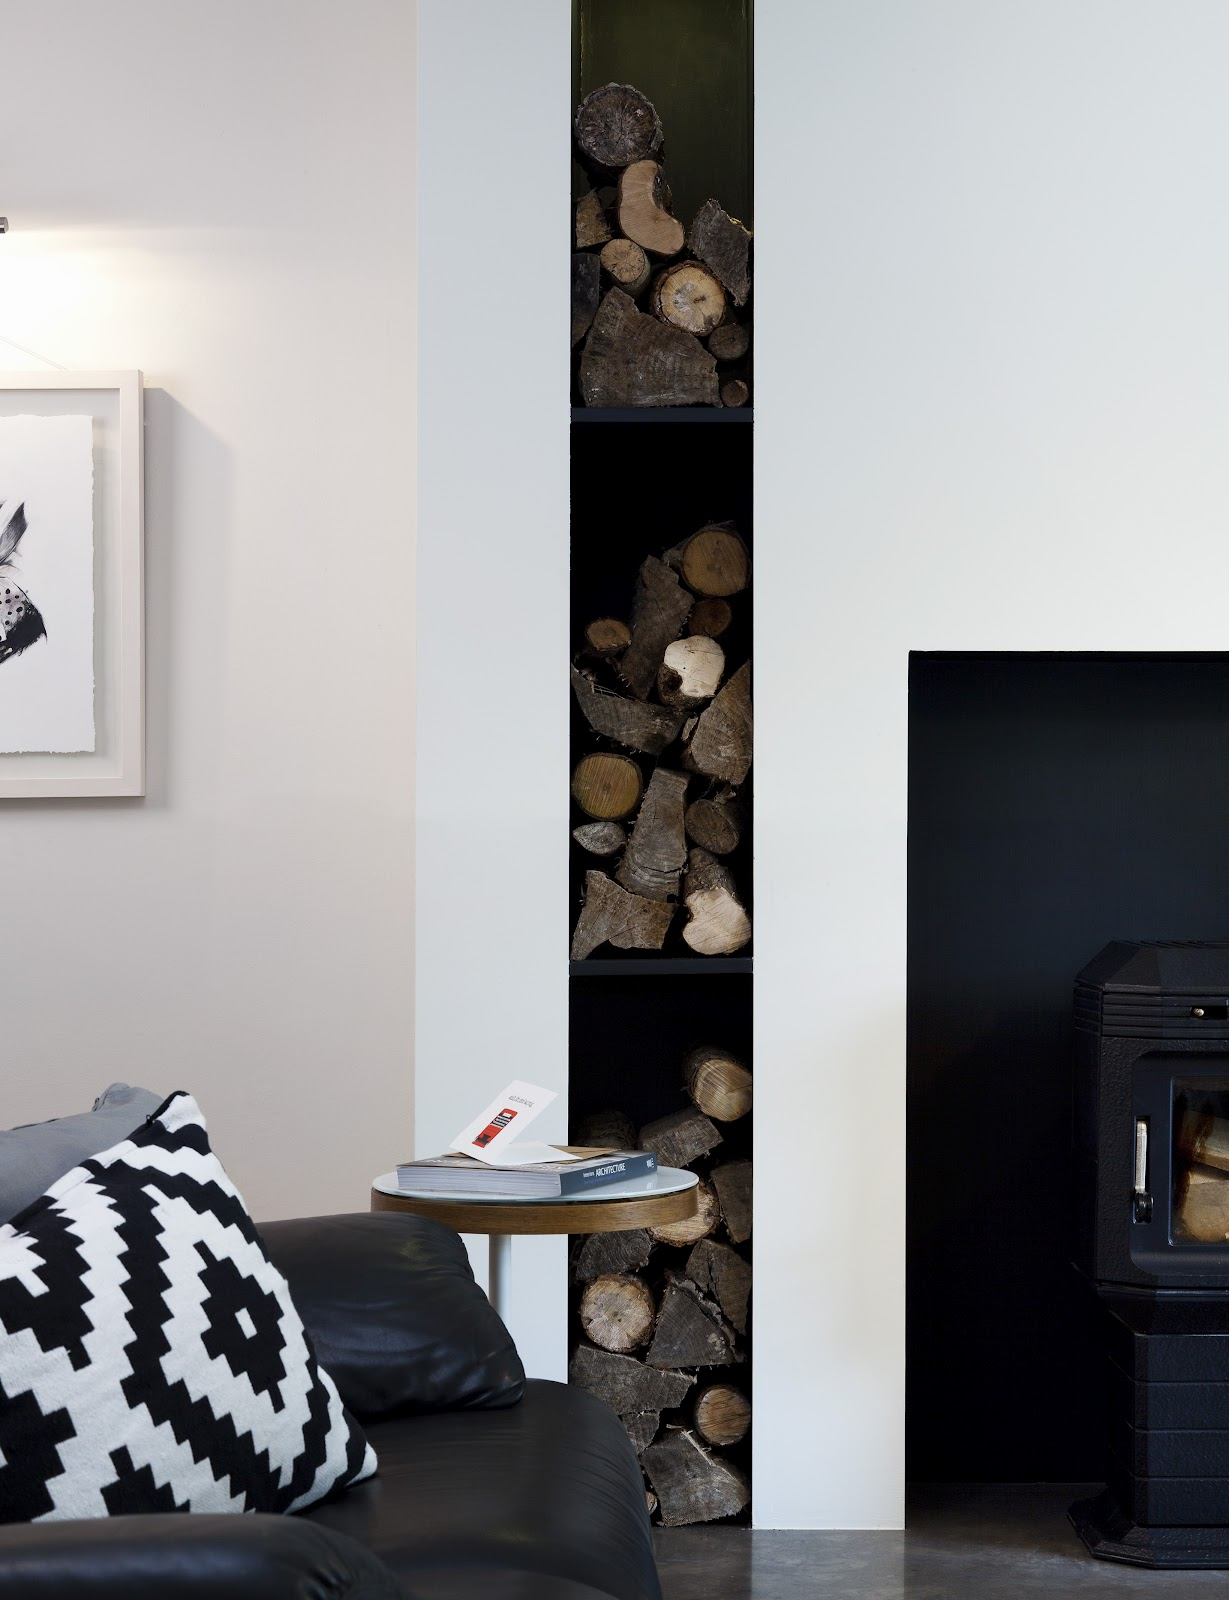 Roisin lafferty | Creating Space: Greystones Residence